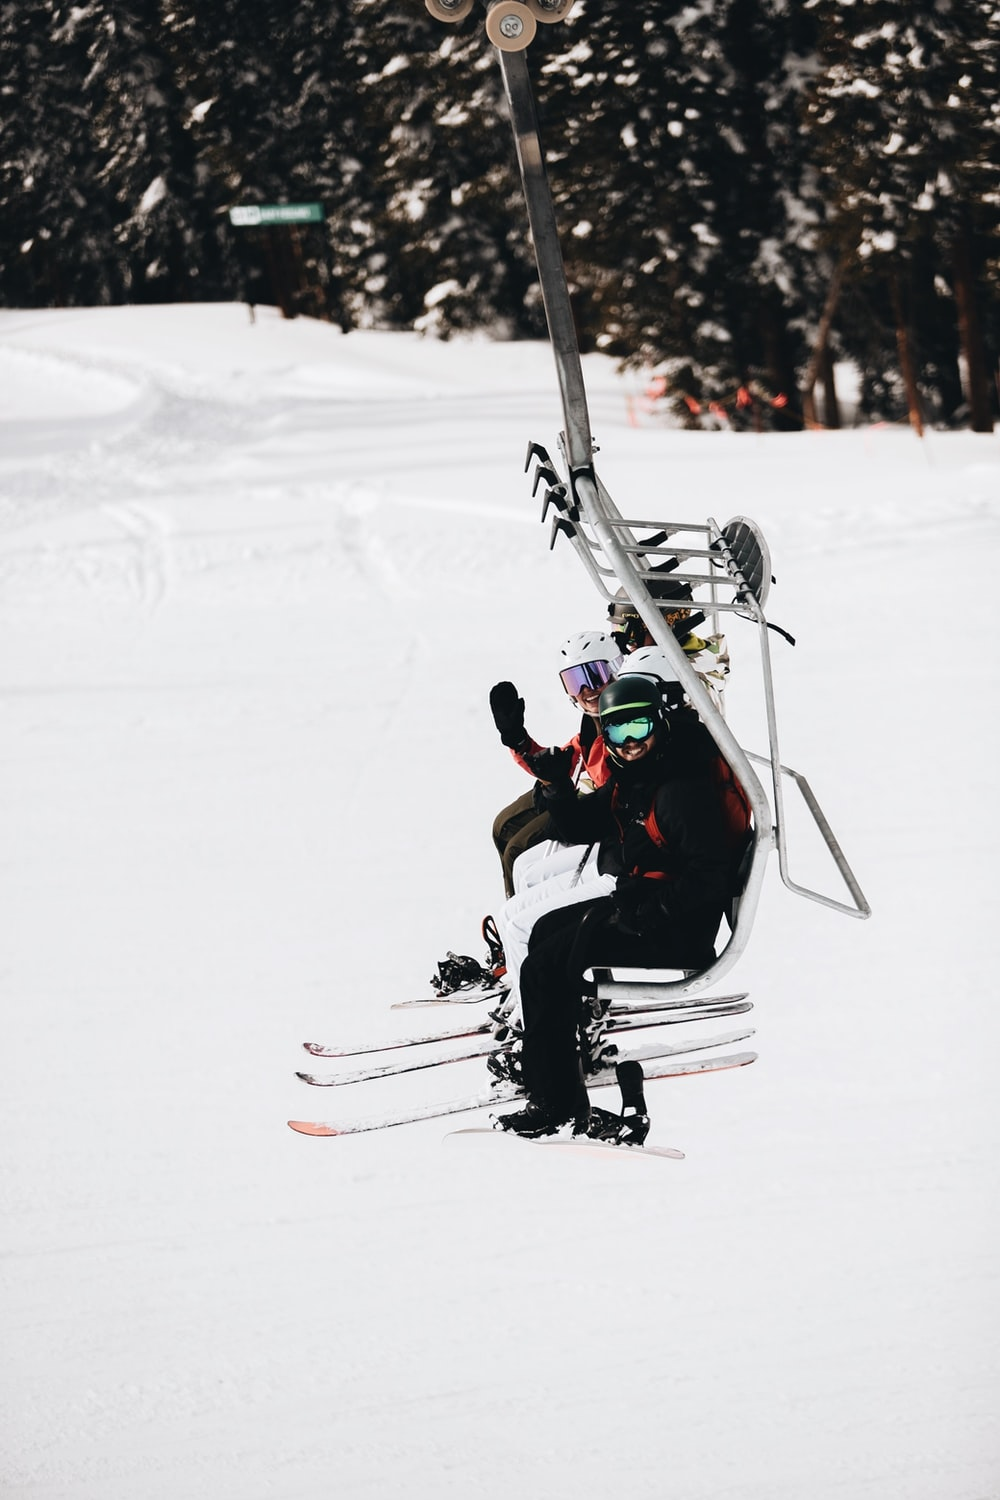 man in black jacket and red pants riding ski blades on snow covered ground during daytime